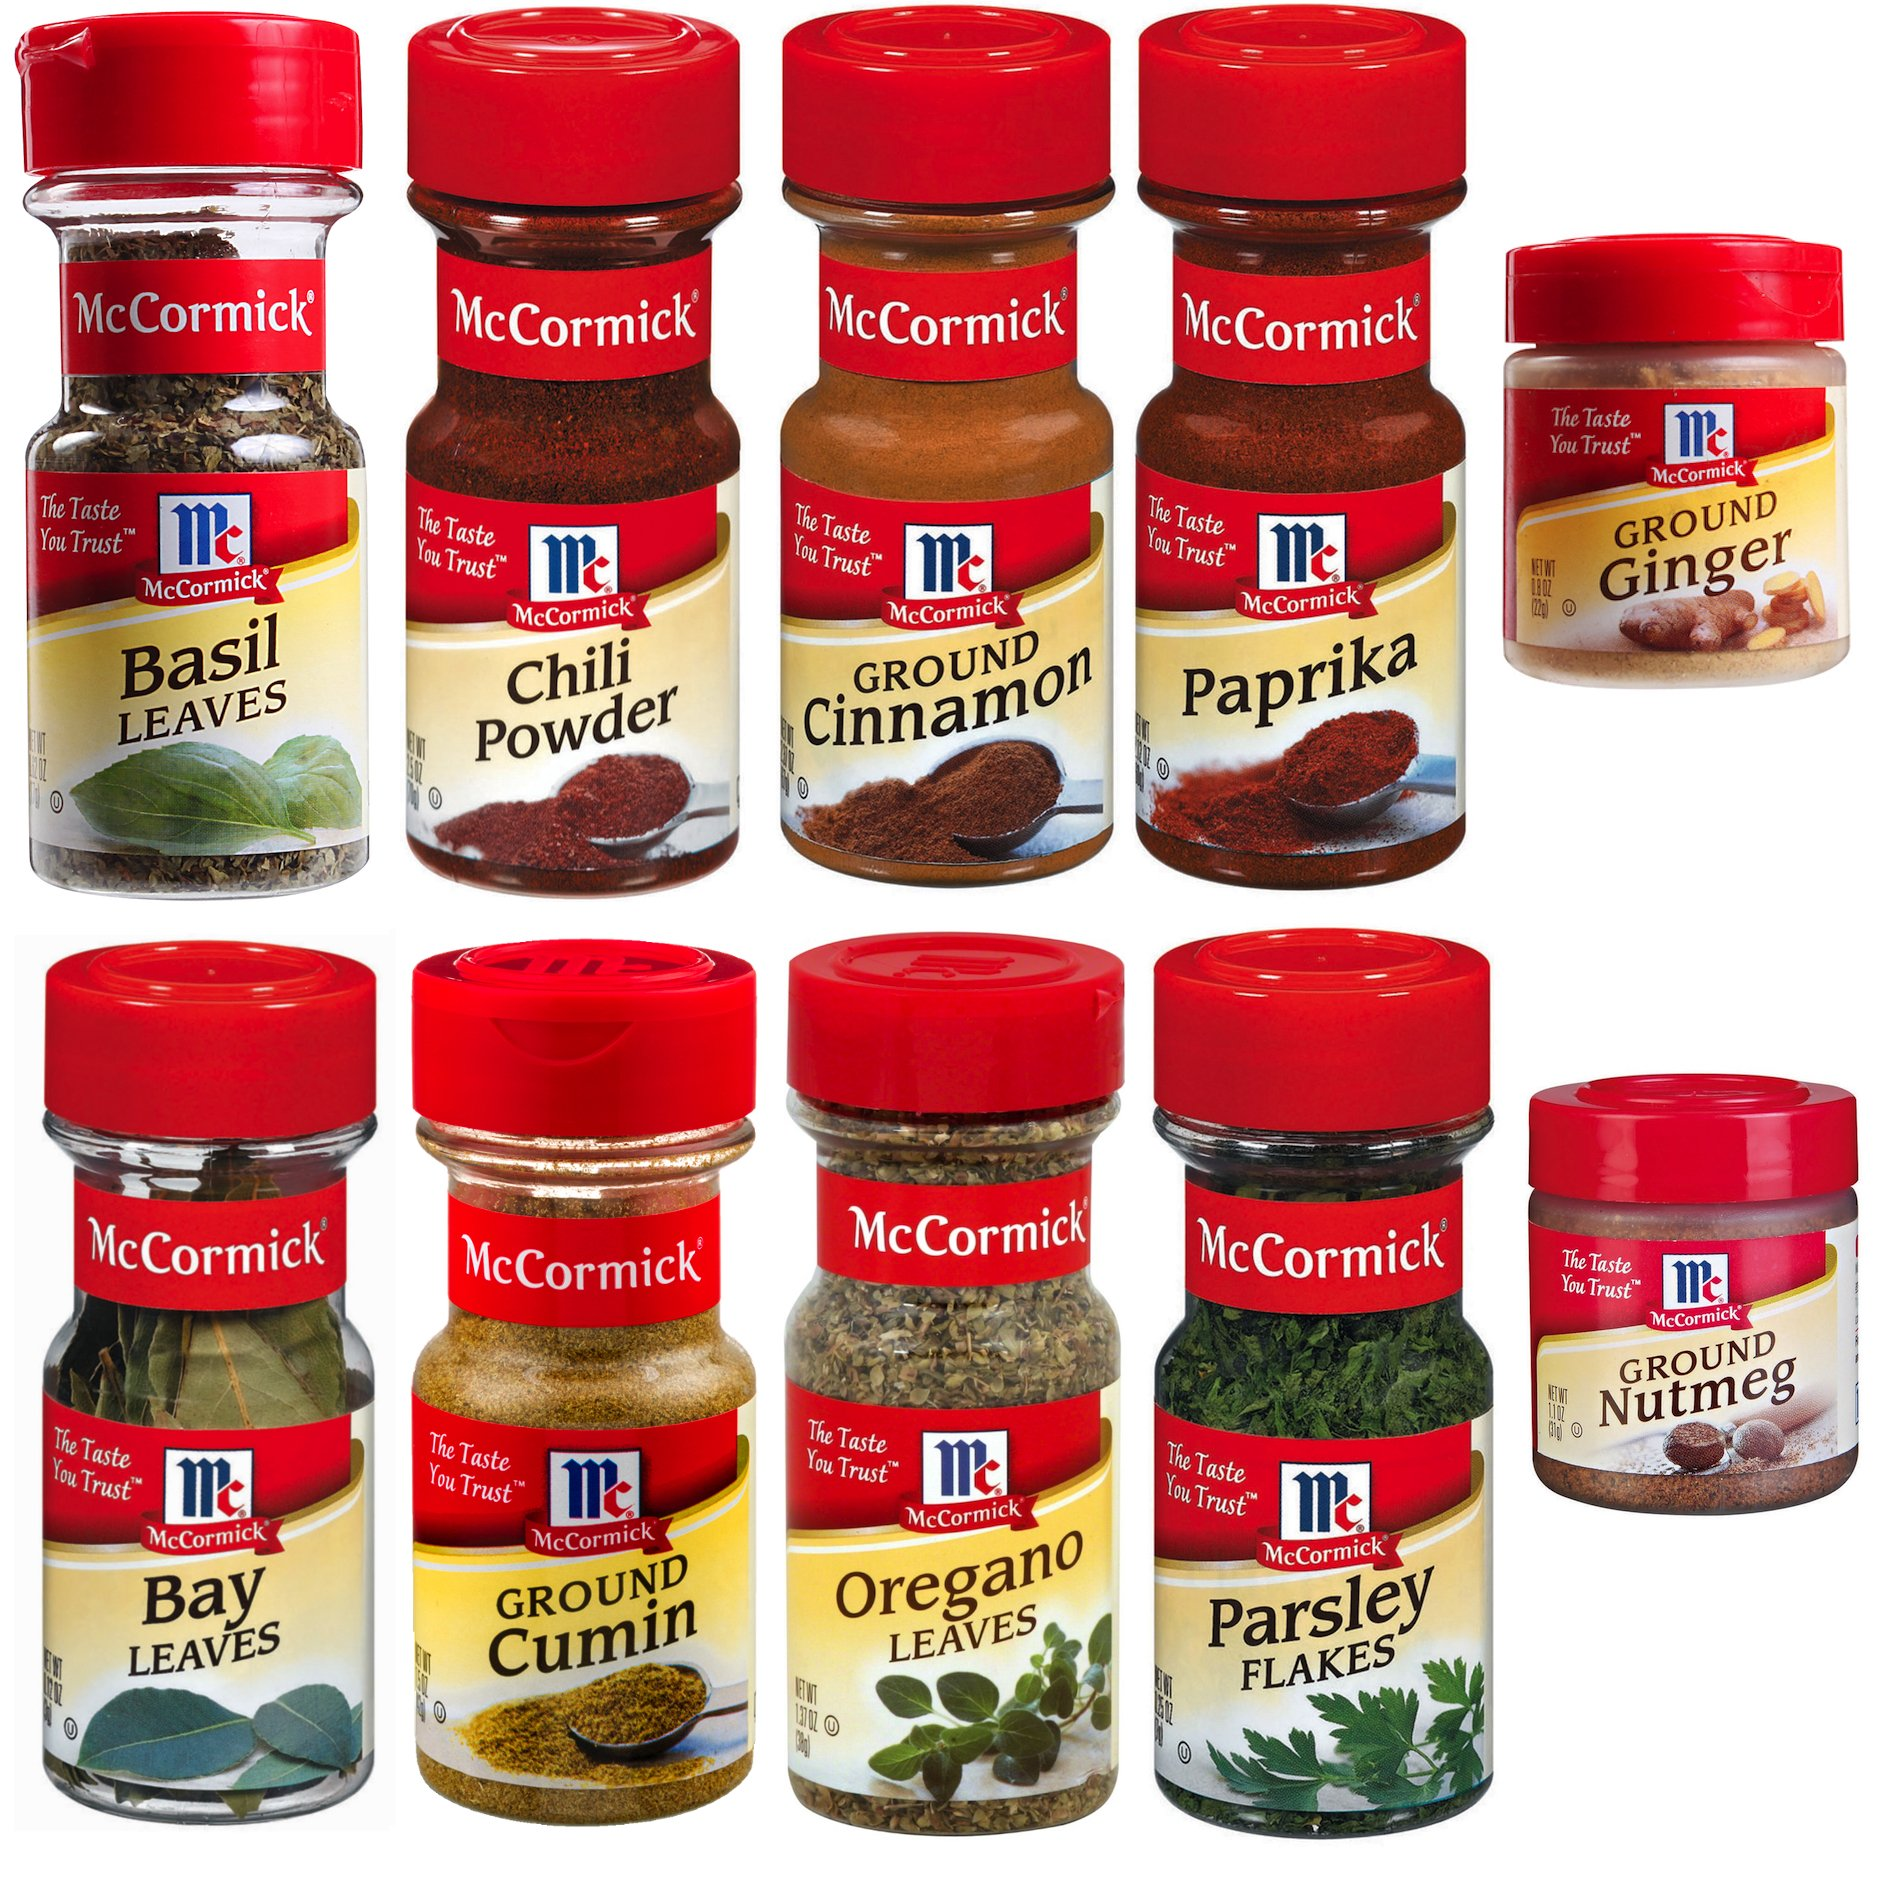 Mccormick Spice Rack: Amazon.com : Assorted McCormick Spice Grinder Variety Pack